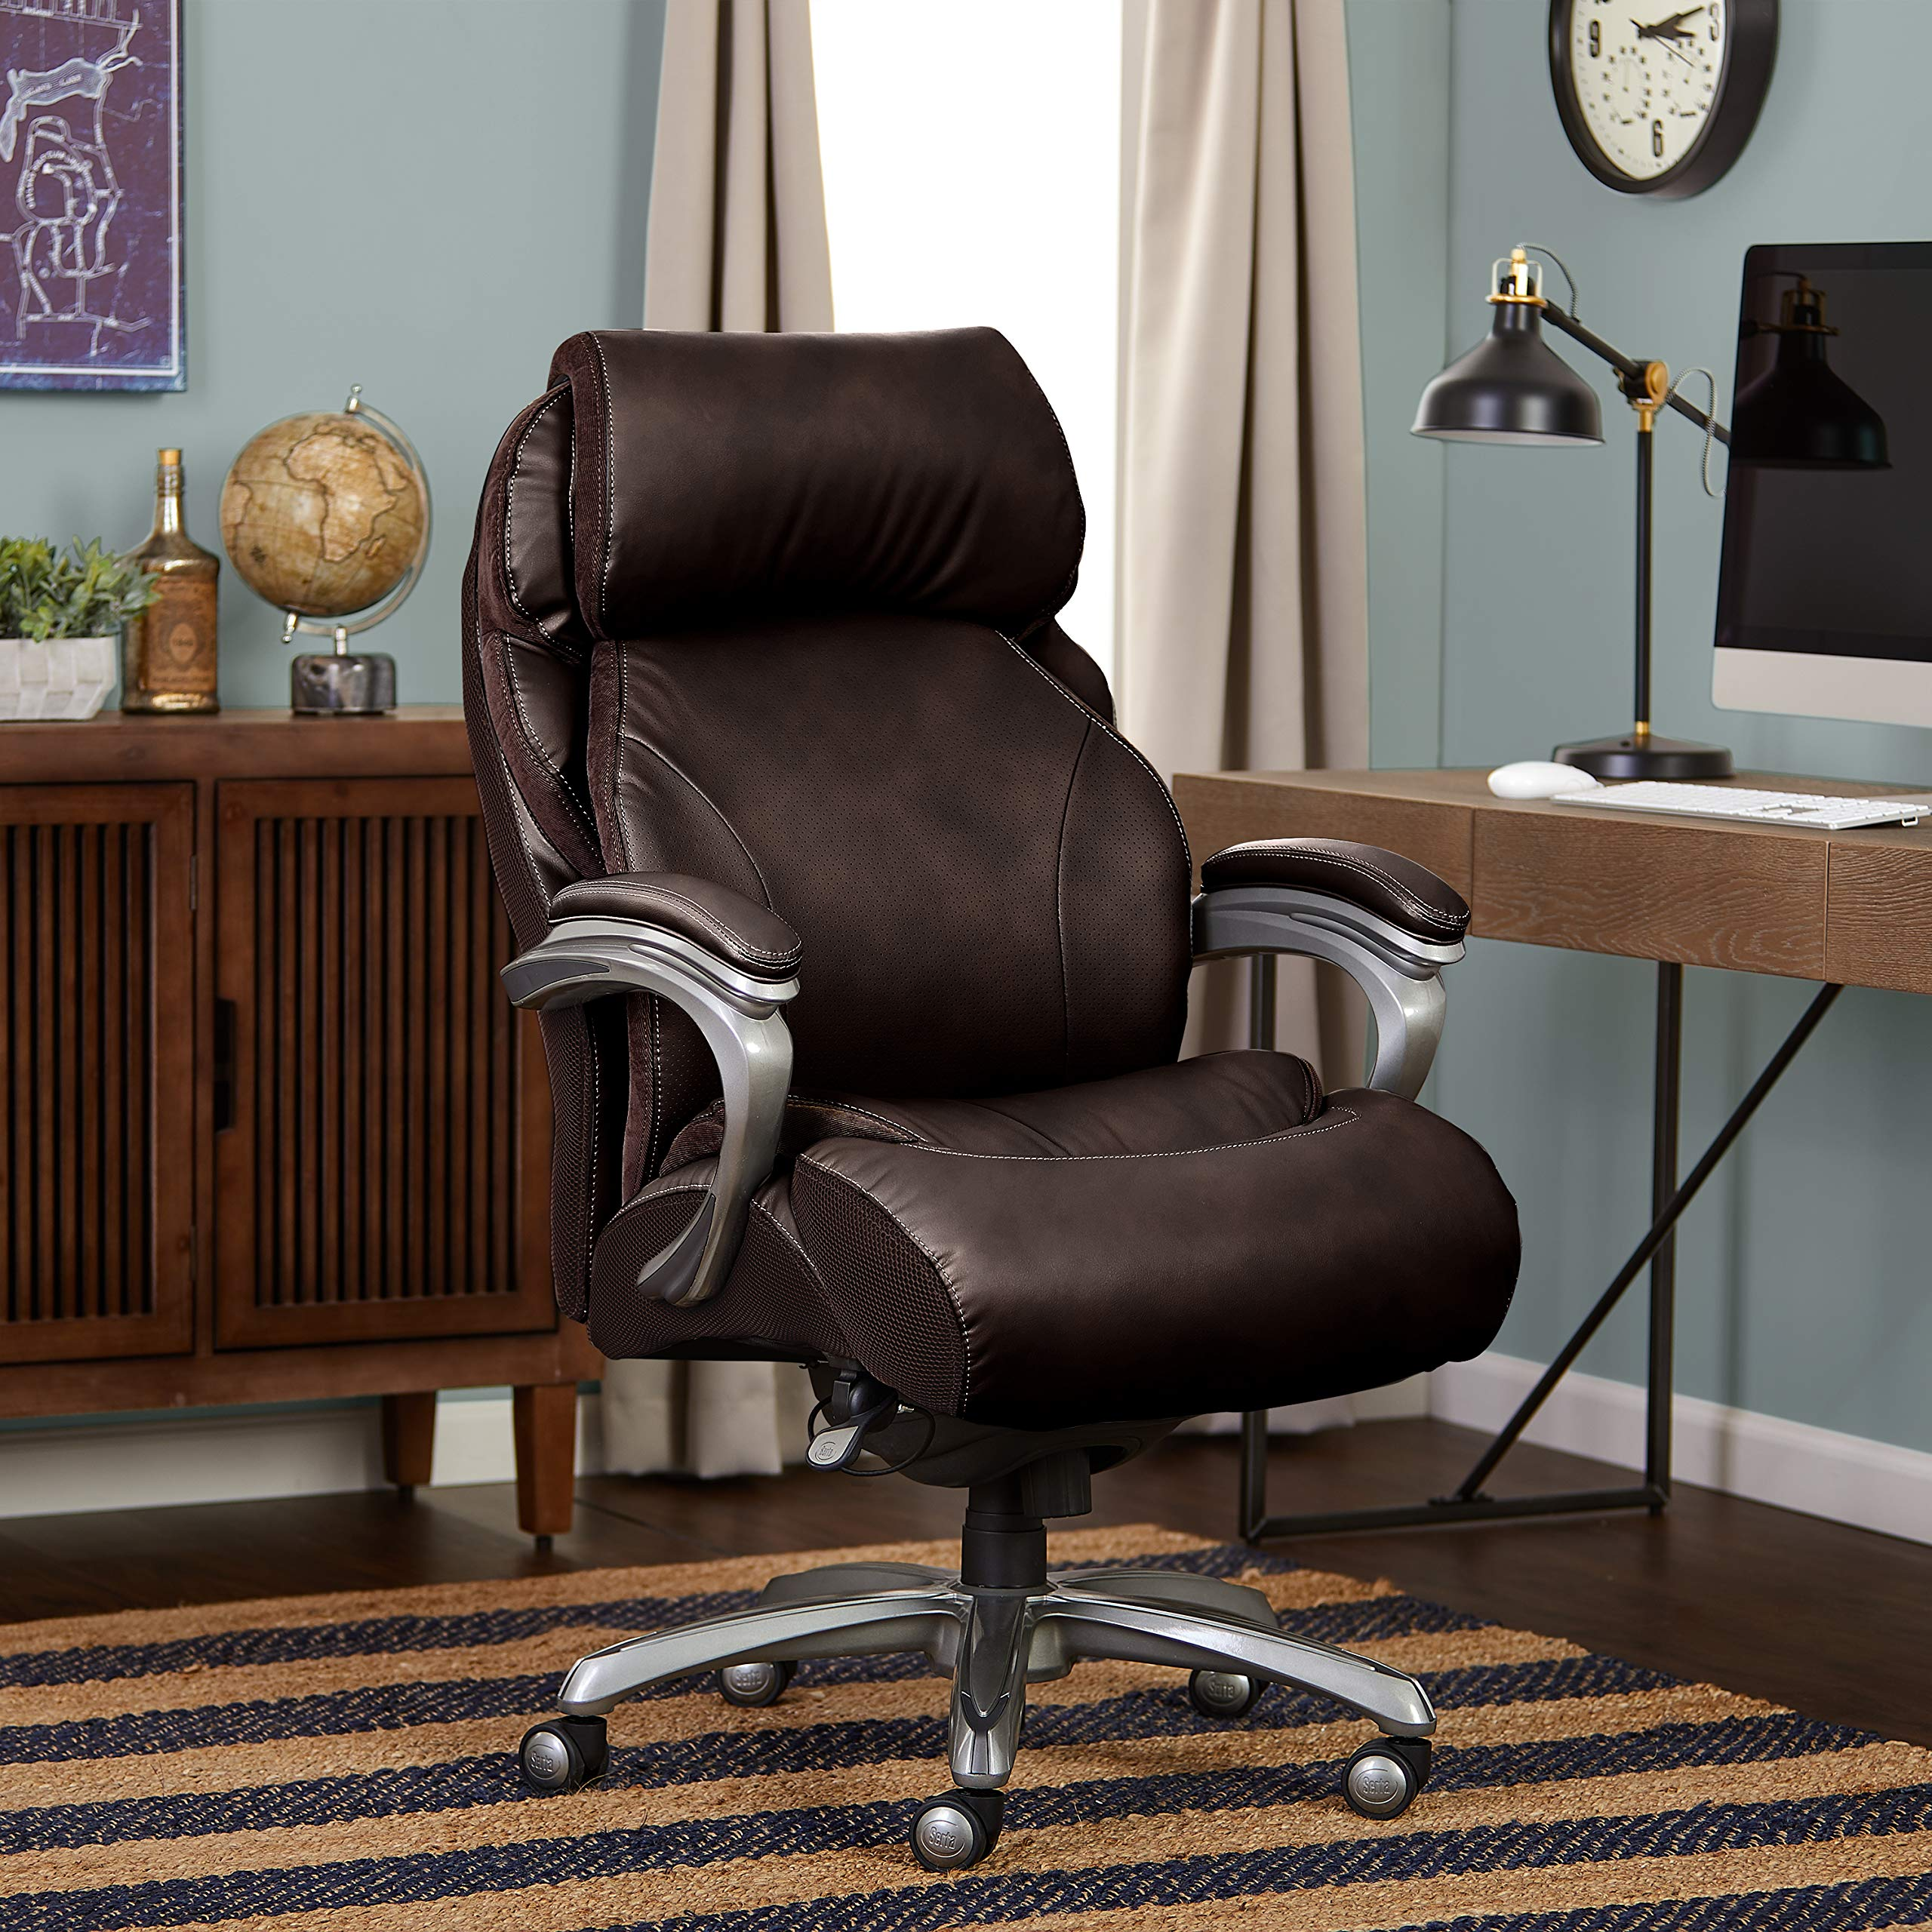 Serta CHR10053B Big & Tall Executive Office Chair, Brown by Serta